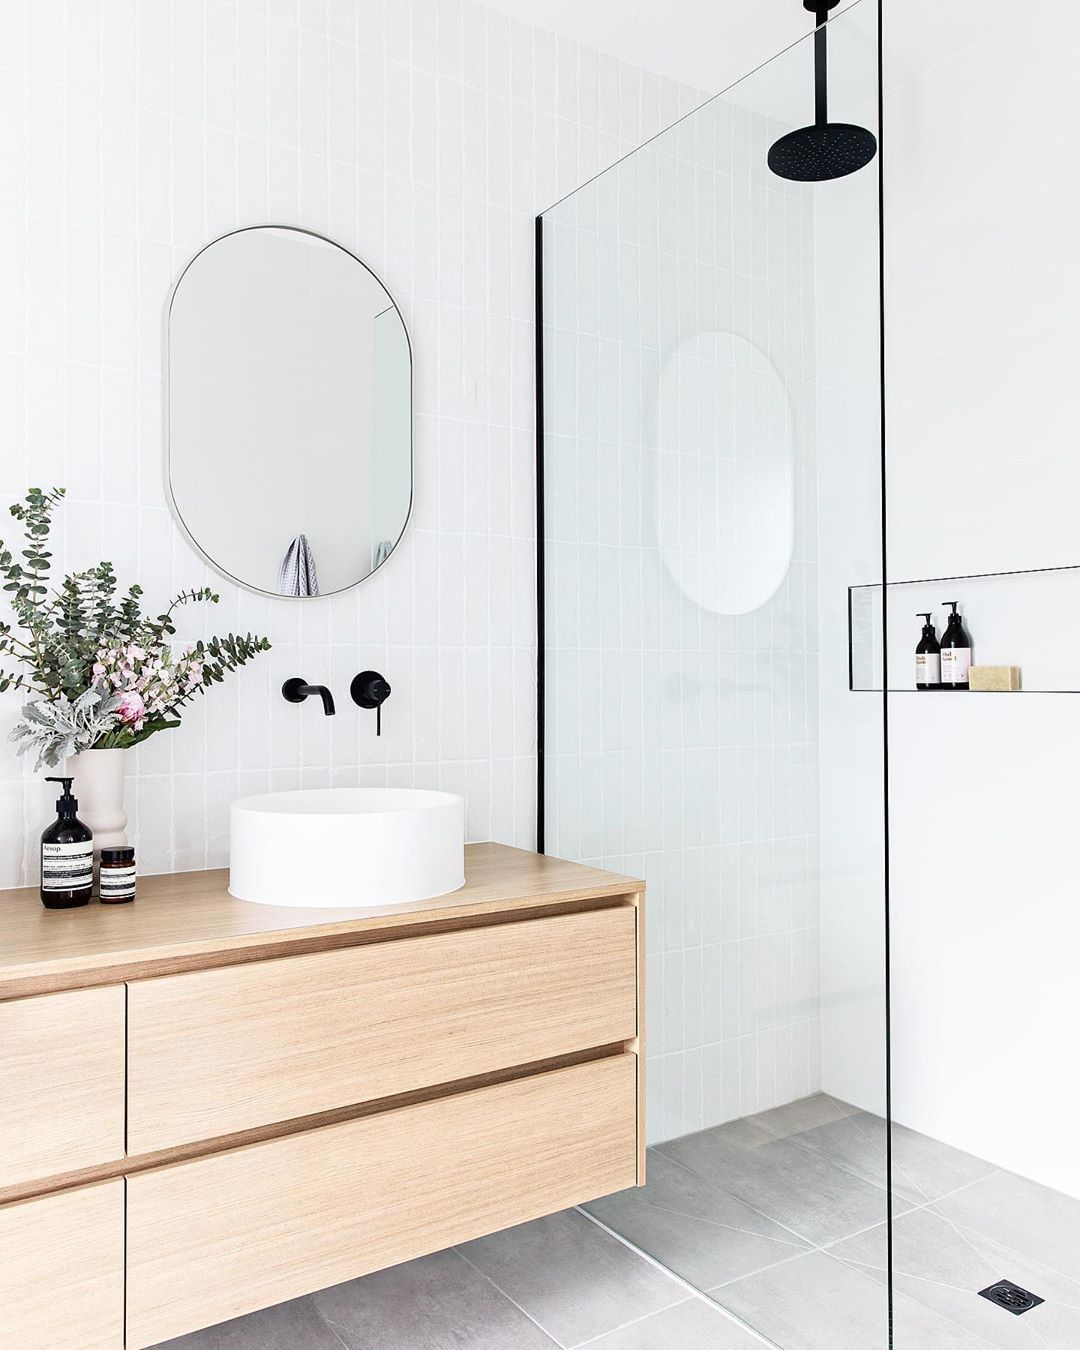 """Photo of Beaumont Tiles on Instagram: """"Who else is ✨ DREAMING✨ of a white, light and bright bathroom like this? Make that dream a reality with our Tribeca Brick, classic Belga…"""""""